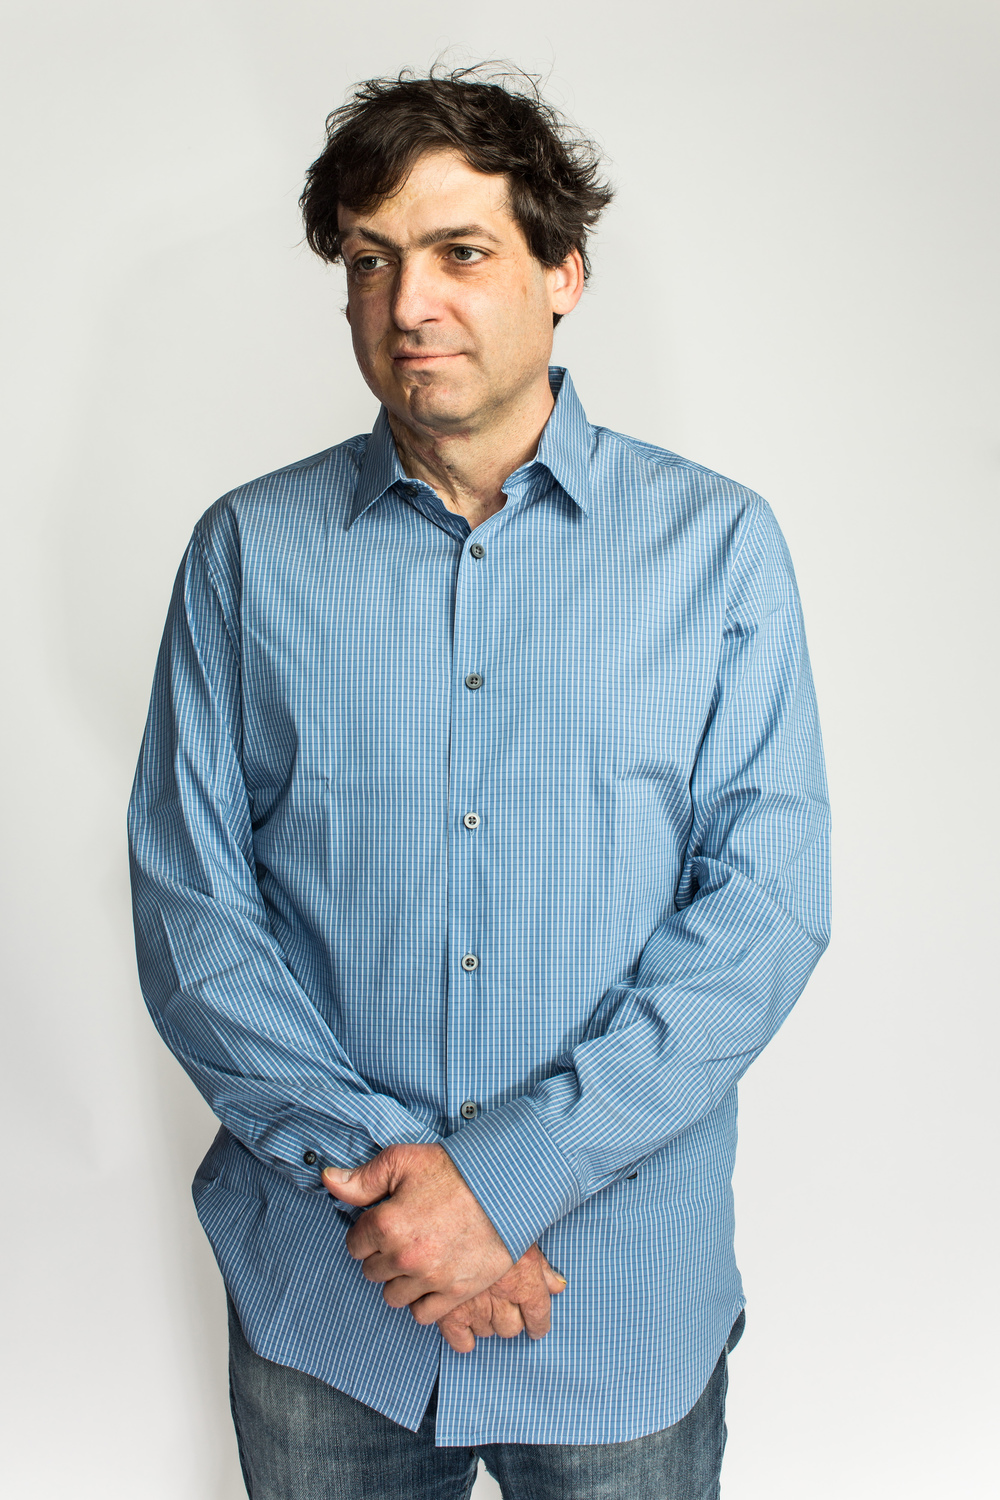 Duke University Professor Dan Ariely